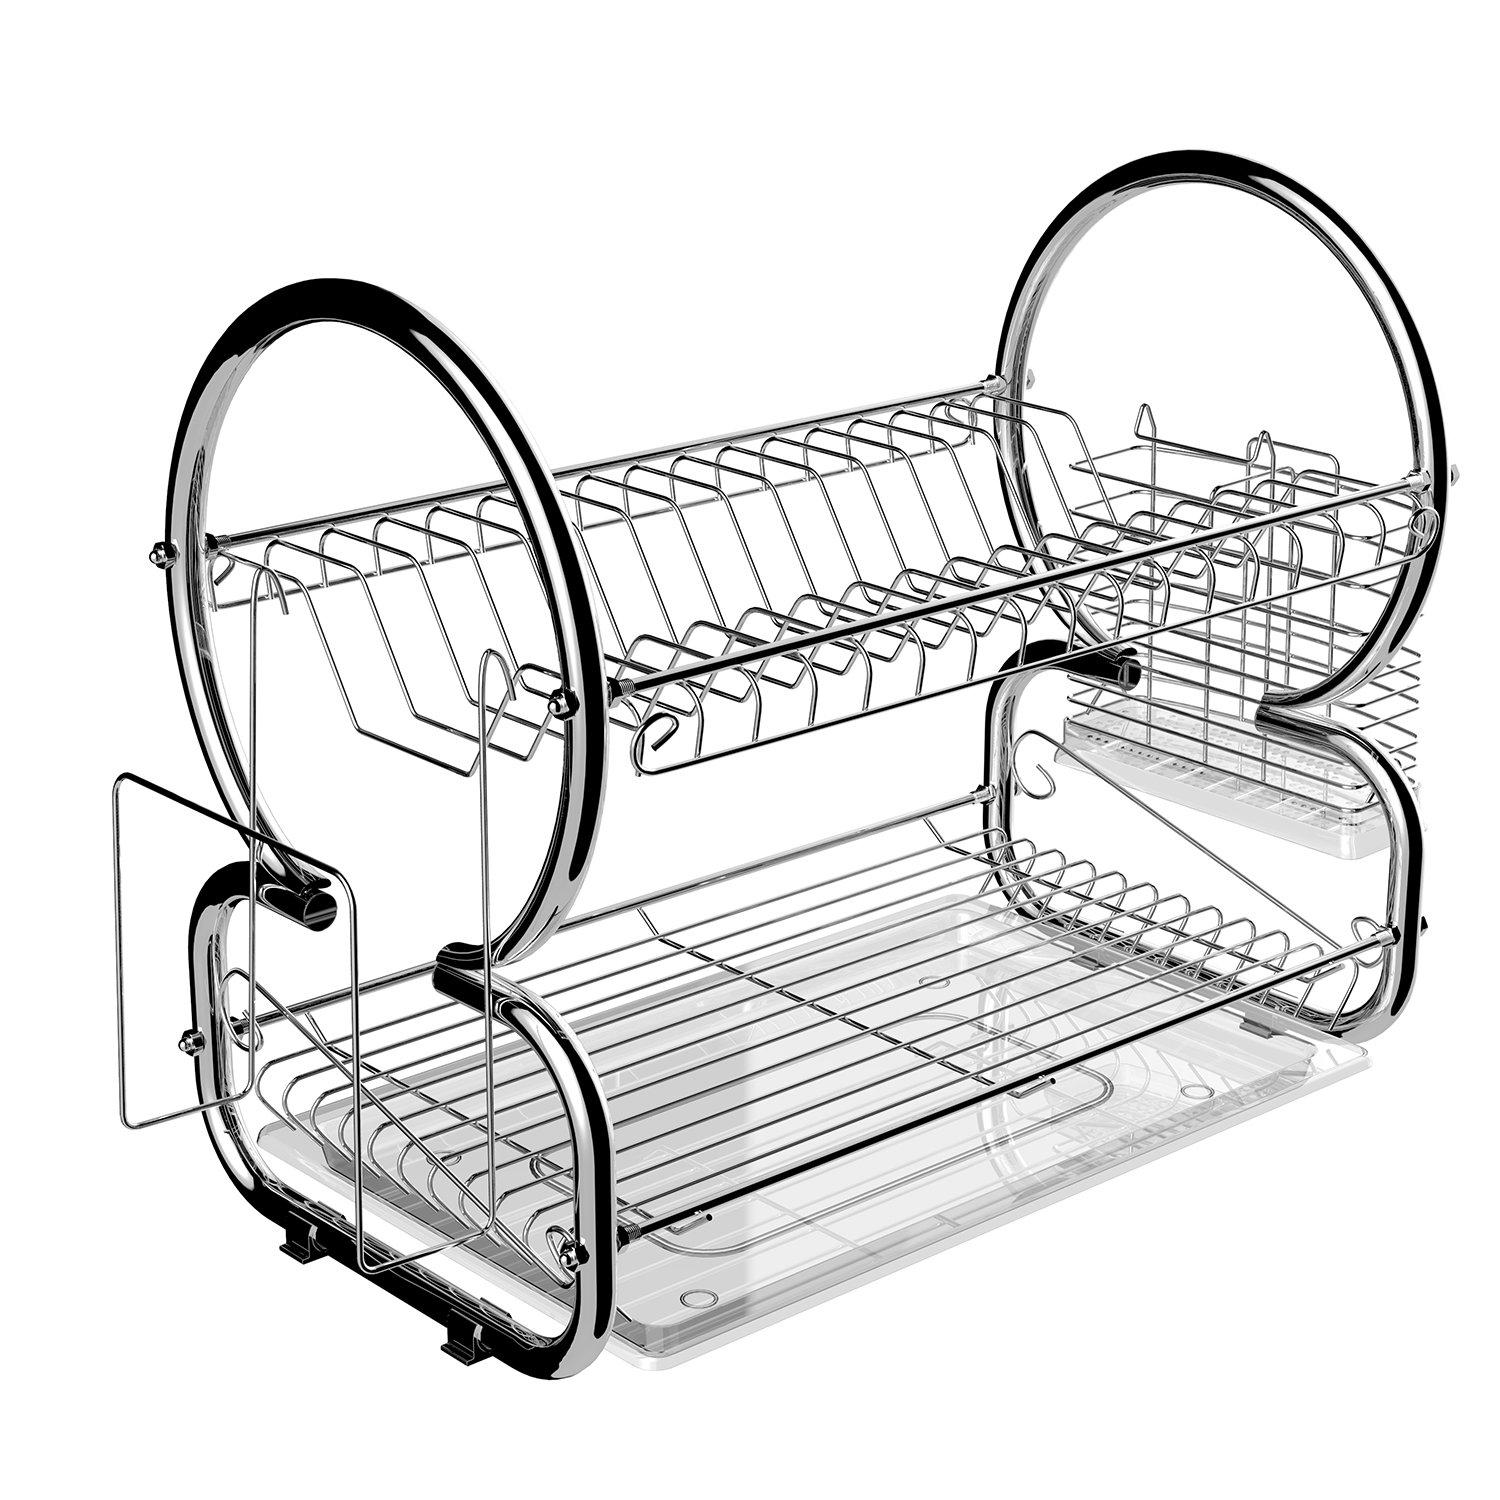 Homdox 2-Tier Dish Rack and Drainboard Set, Stainless Steel Dish Drying Rack 17L x 10W x 15H inches